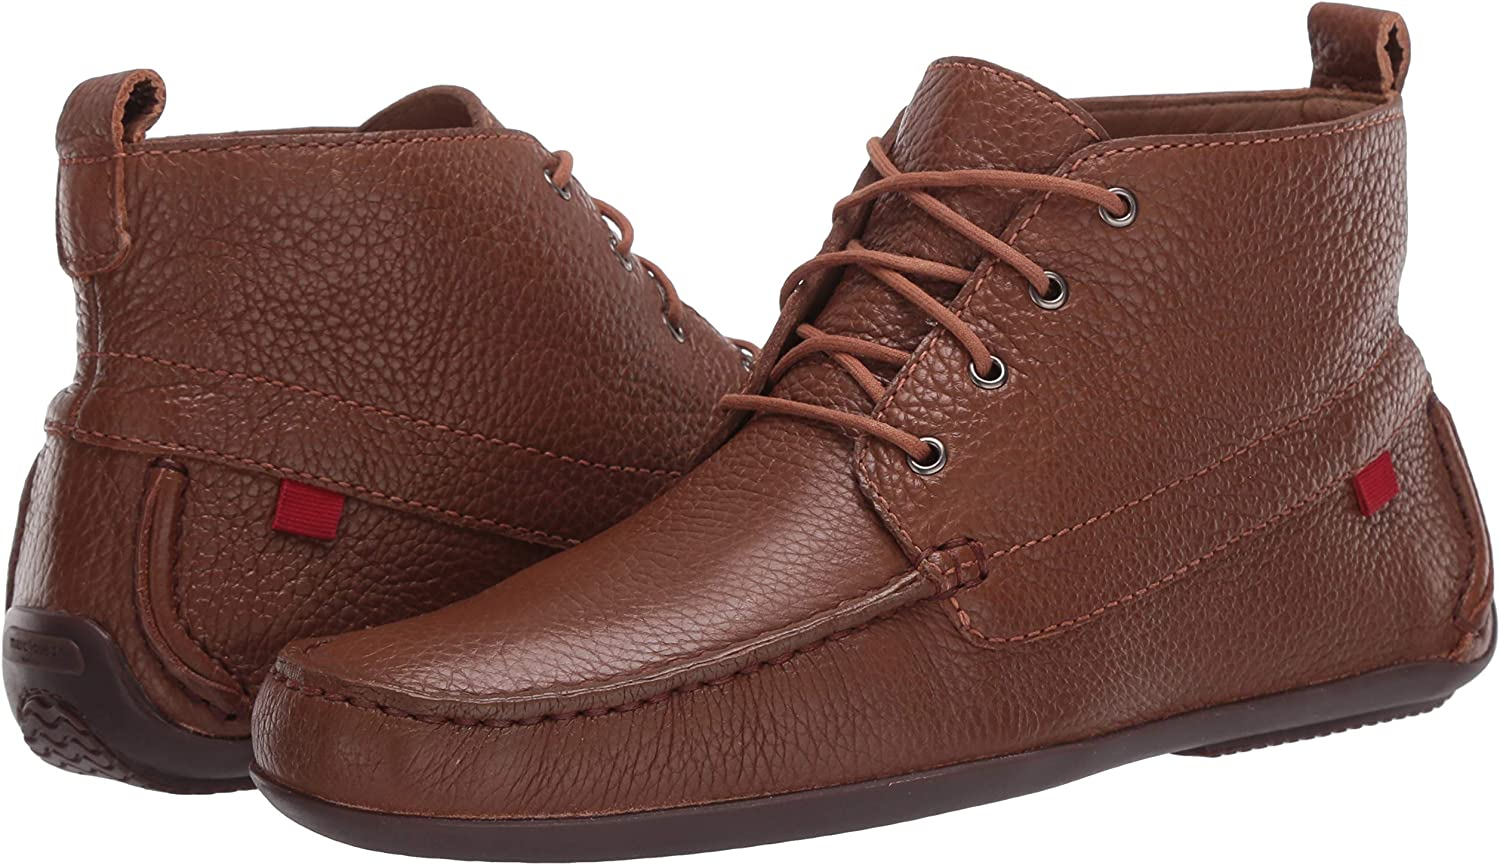 MARC JOSEPH NEW YORK Mens Leather Luxury Driving Style Ankle Boot with Laces